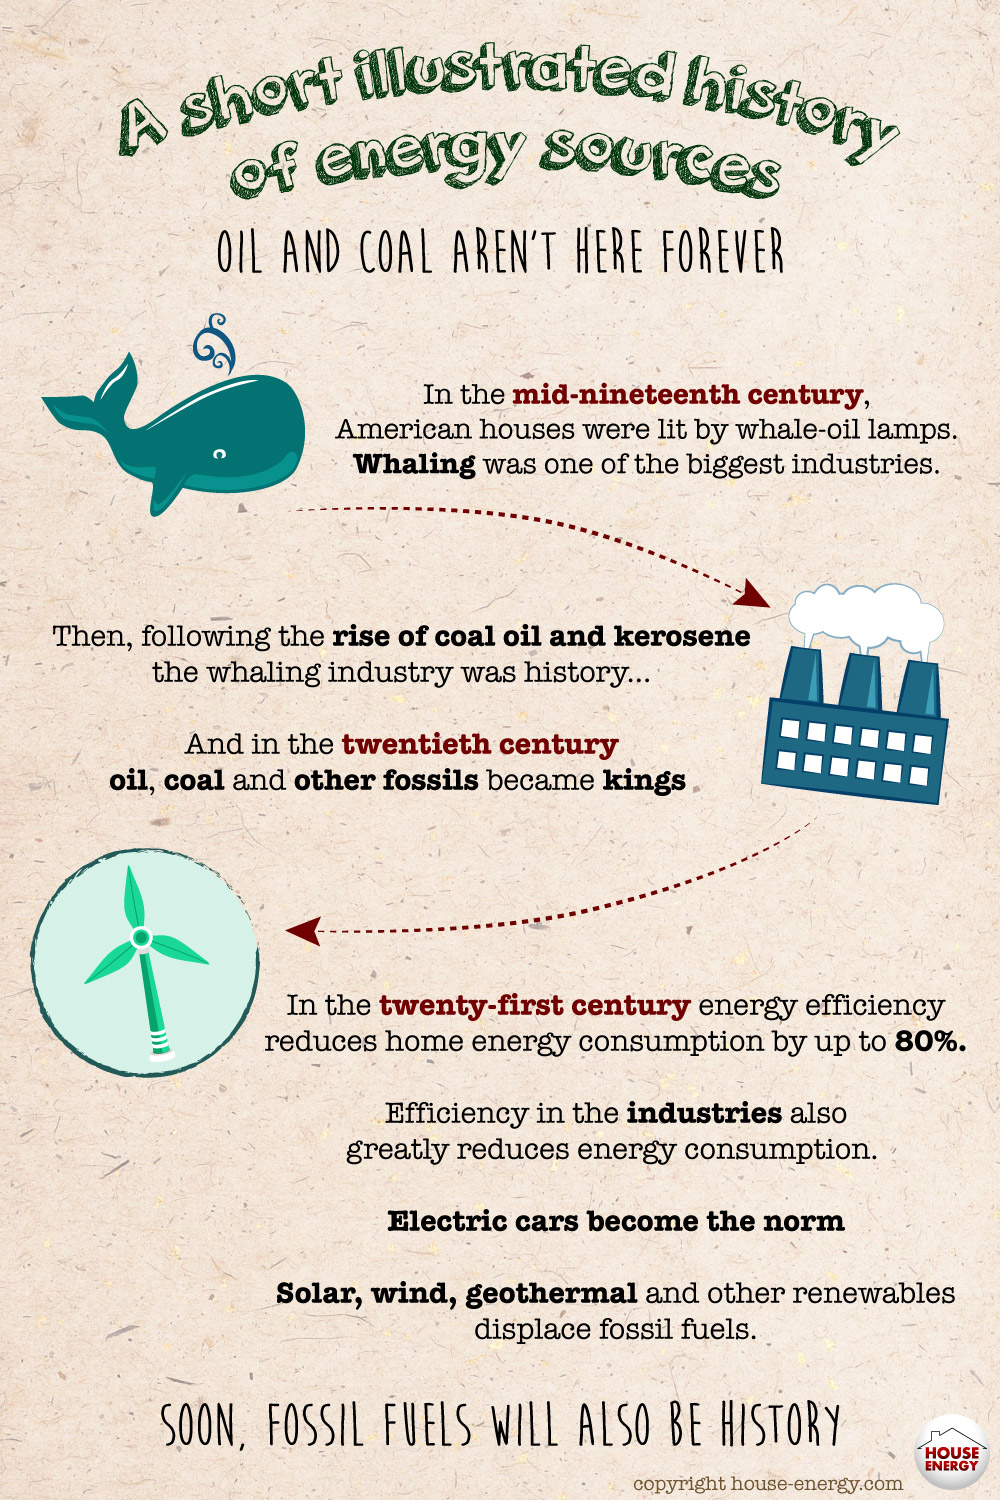 A short history of energy sources: from whale and coal oil to solar